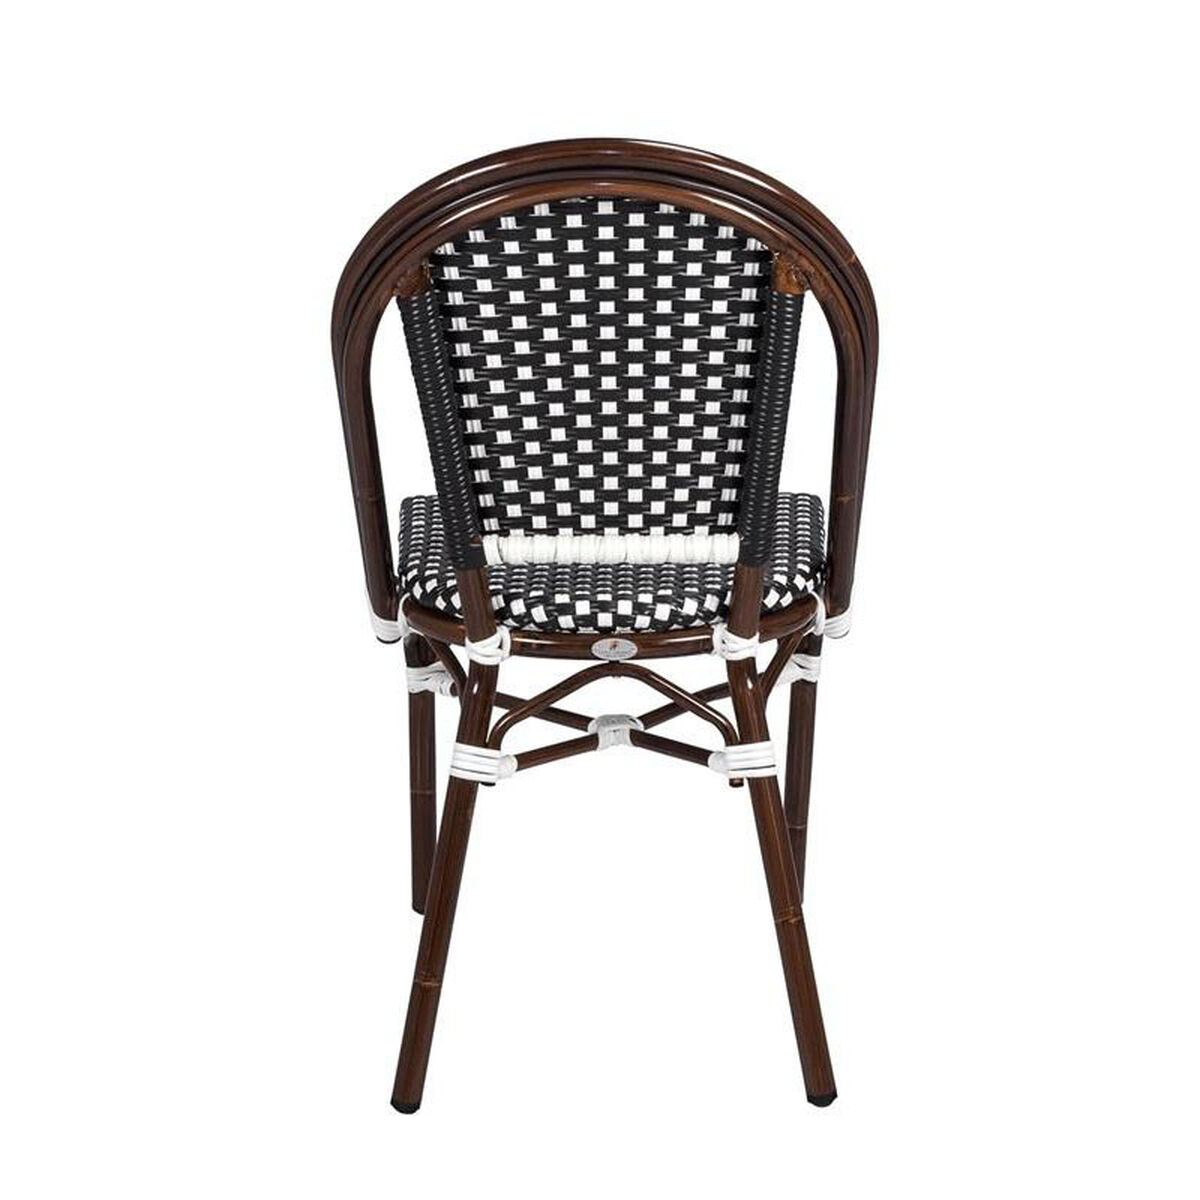 paris outdoor stacking side chair sc 2203 162 blw stackchairs4less com